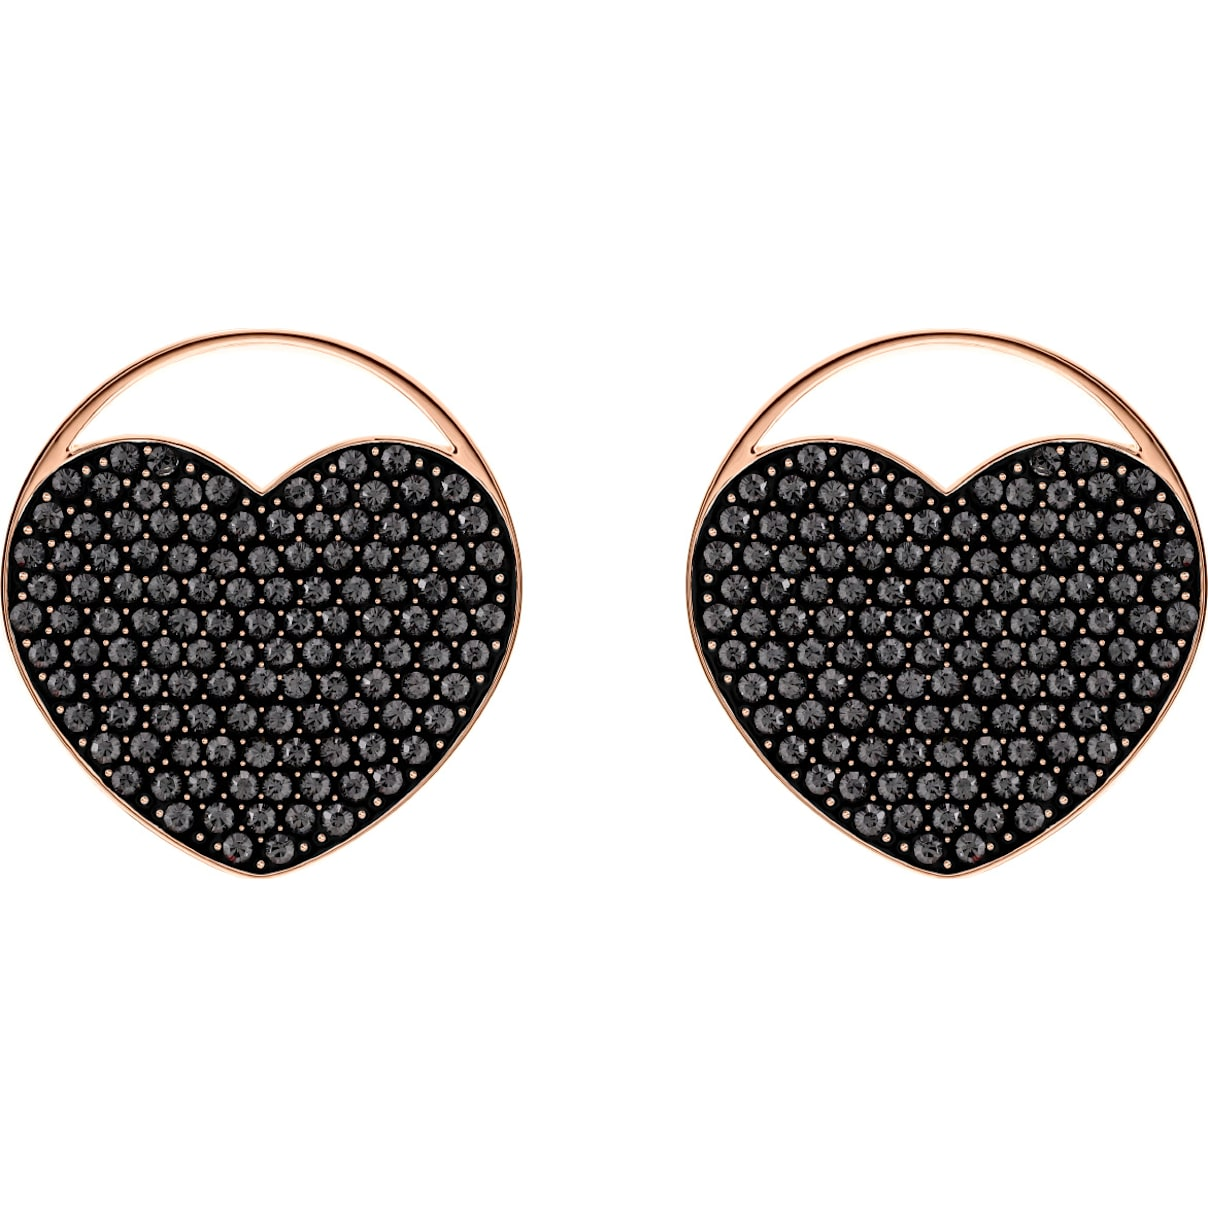 Ginger Stud Pierced Earrings, Gray, Rose-gold tone plated